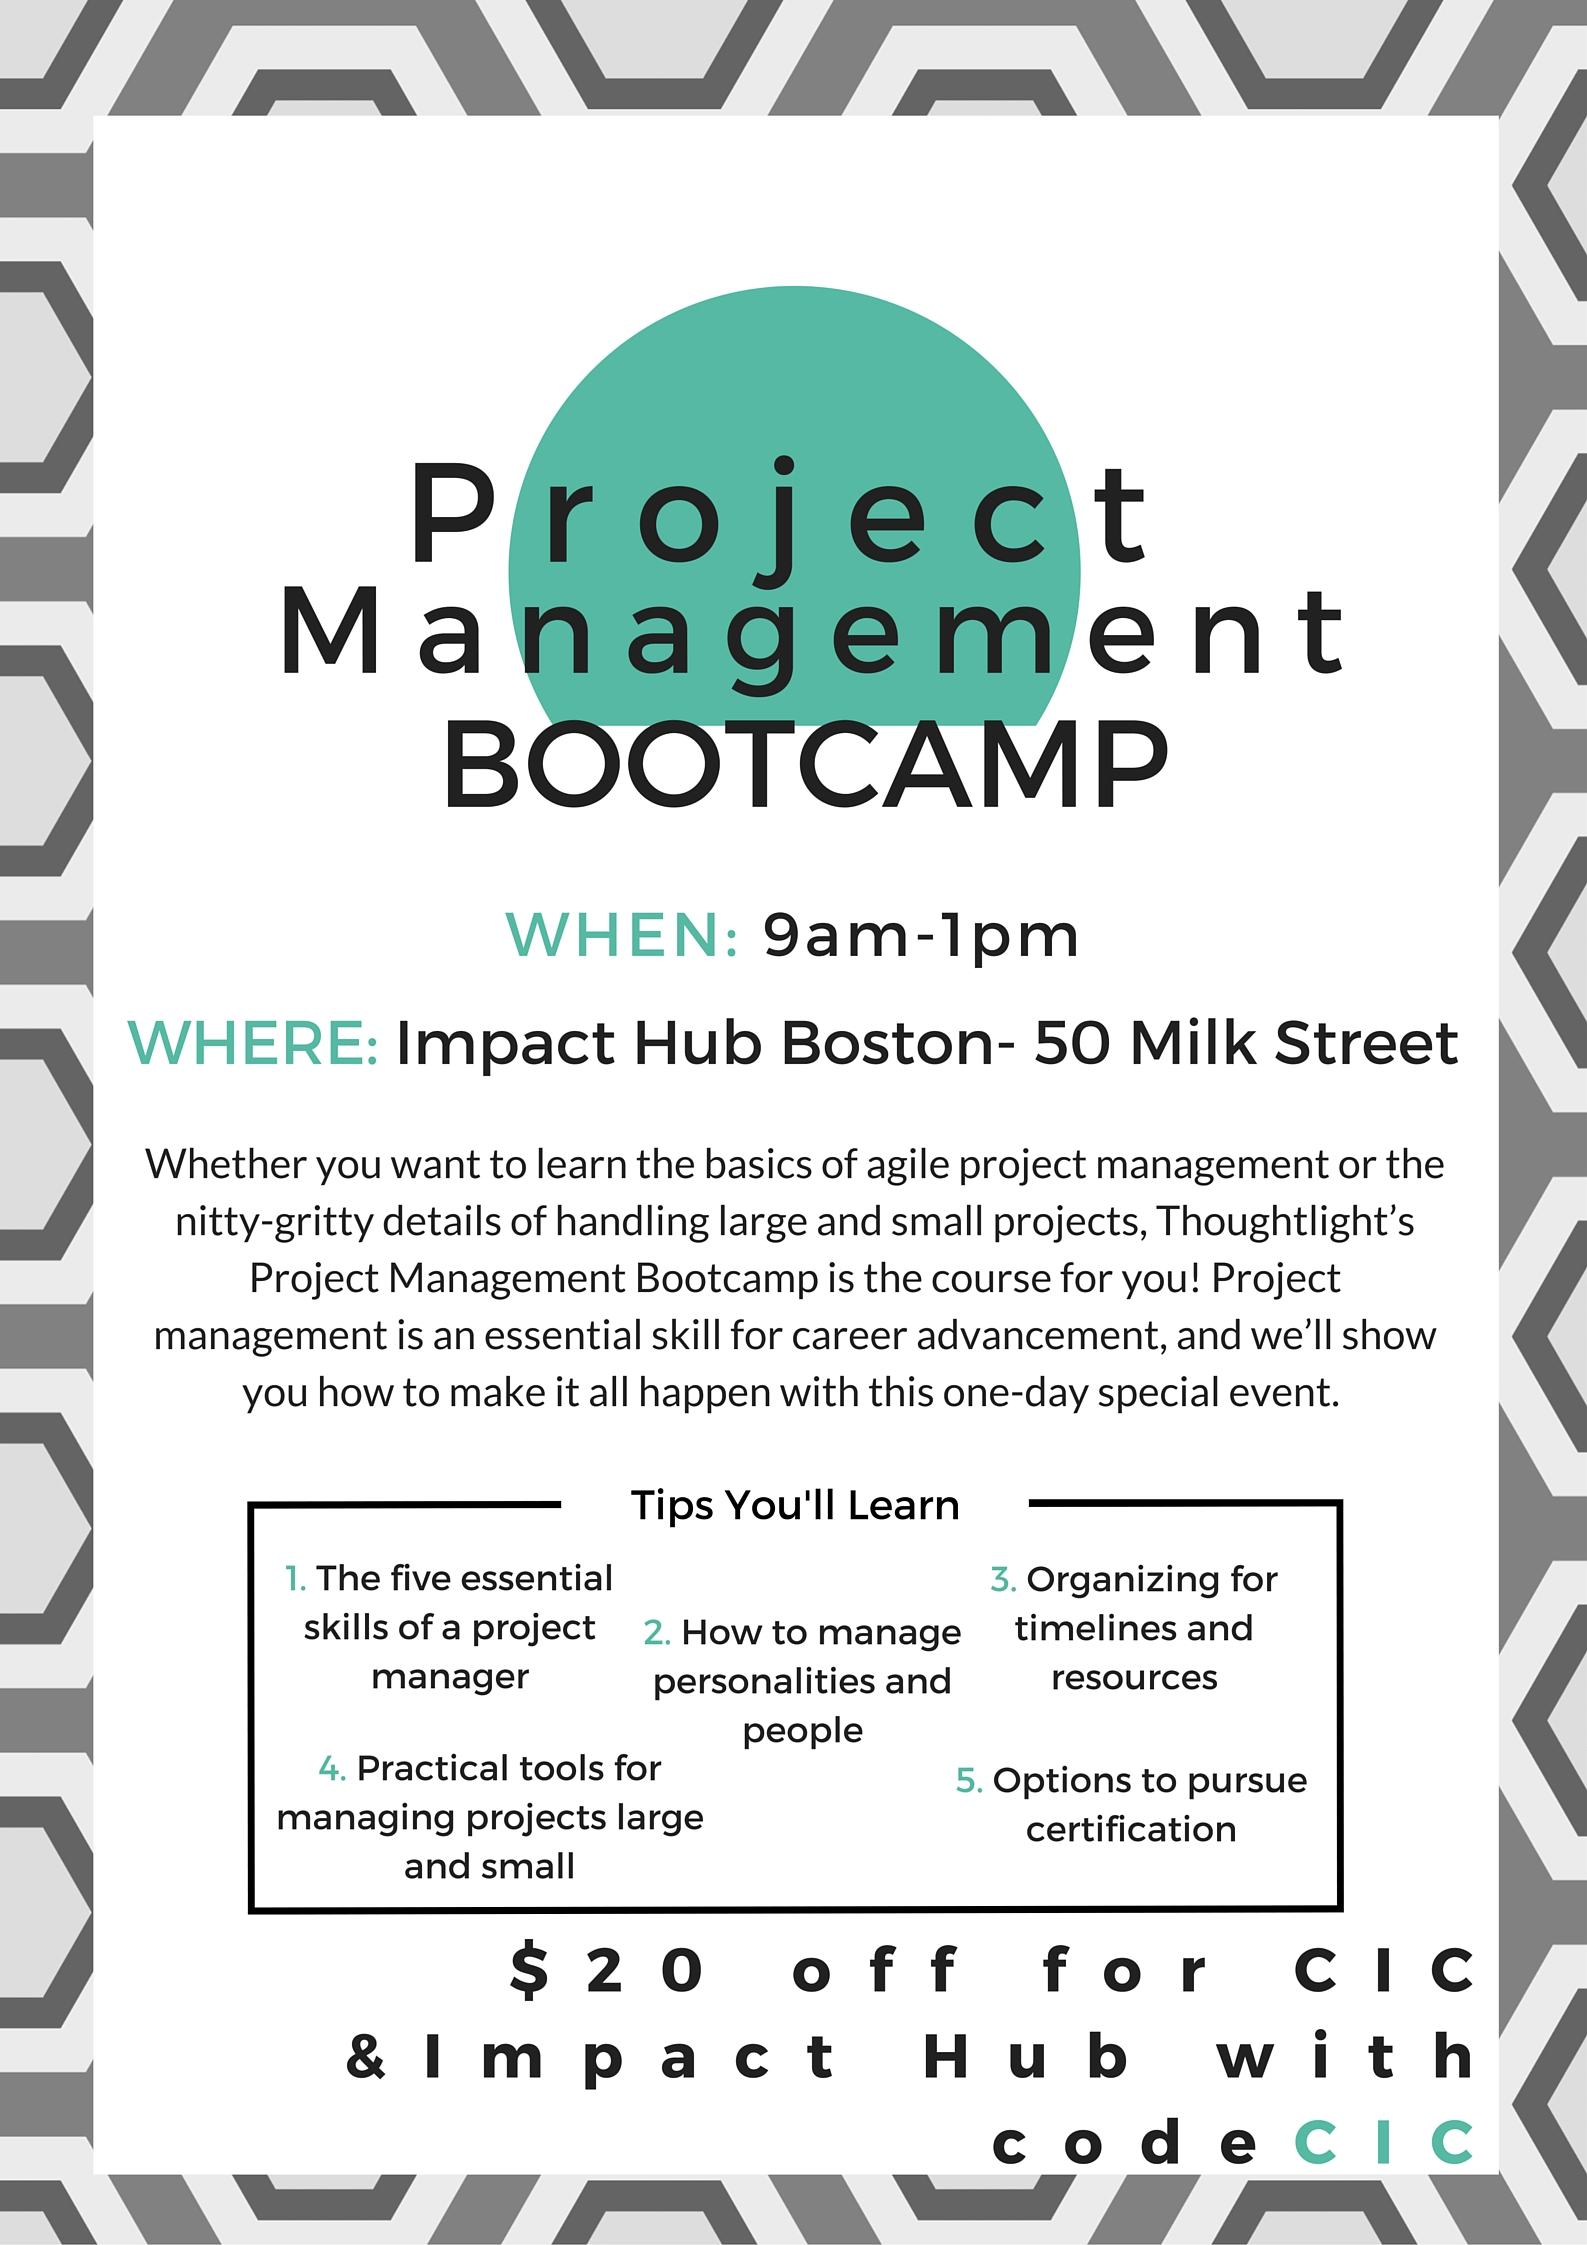 Project Management Bootcamp 042916